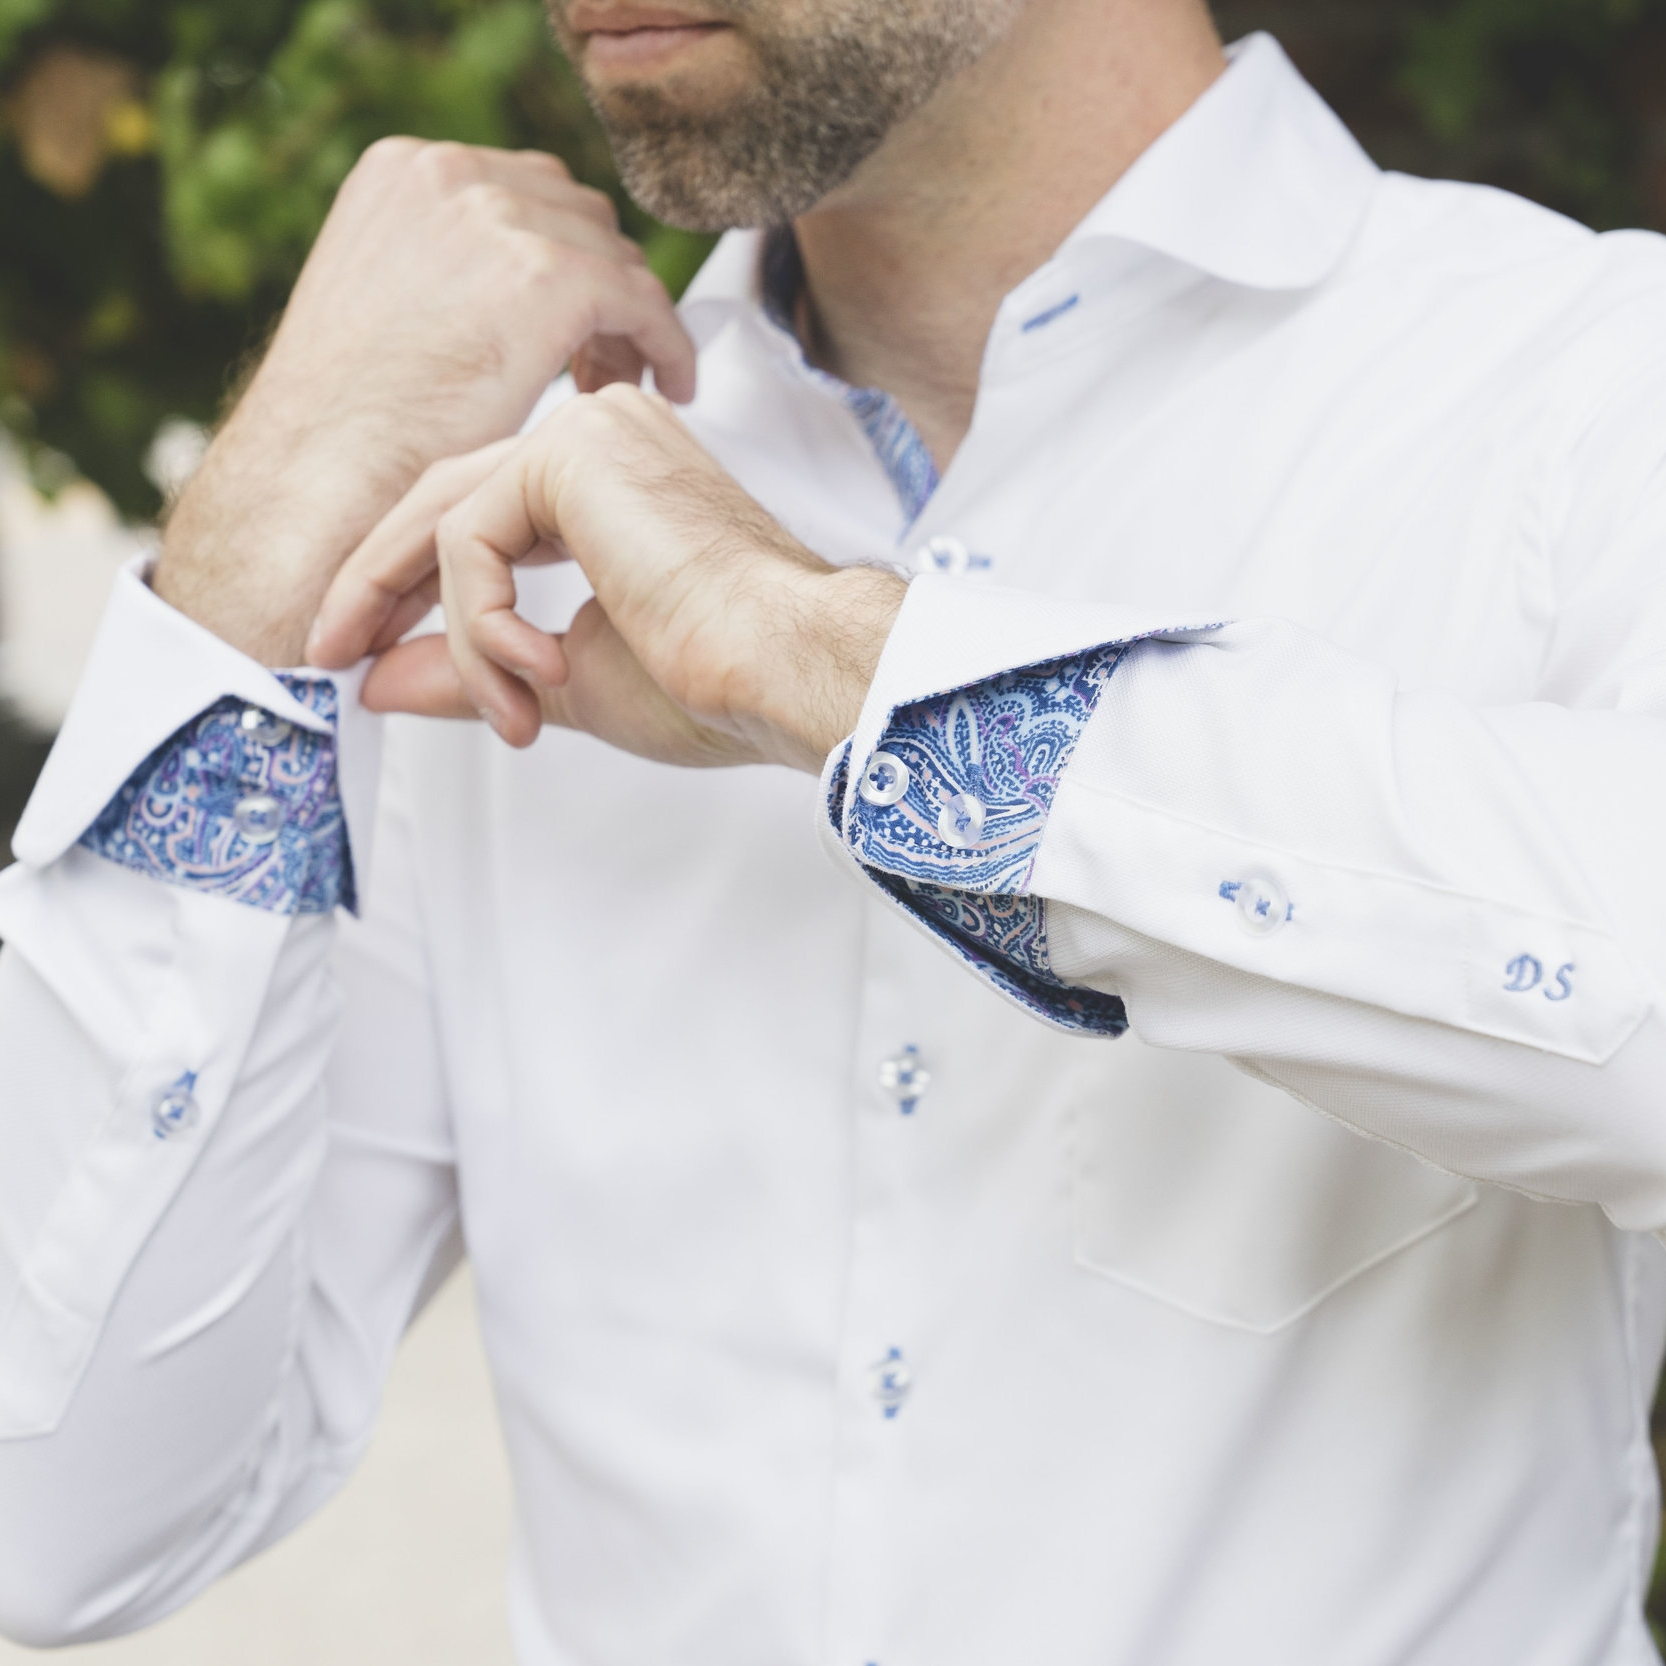 Contrasting color cuffs and placket